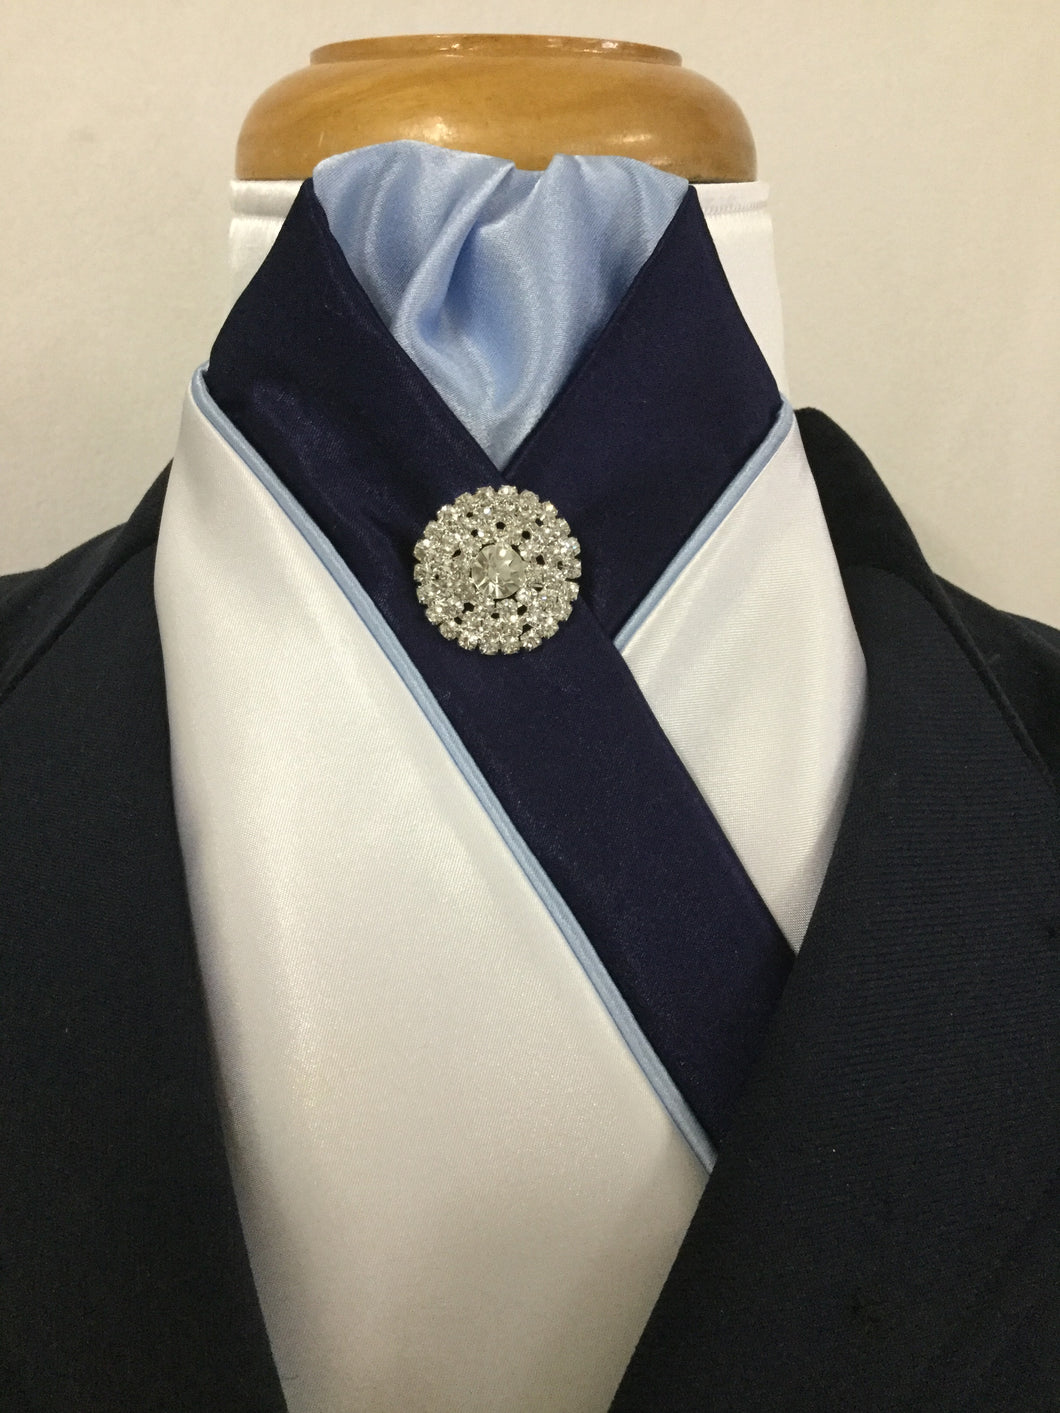 HHD White Satin Pretied Stock Tie 'The Royal' Navy & Light Blue